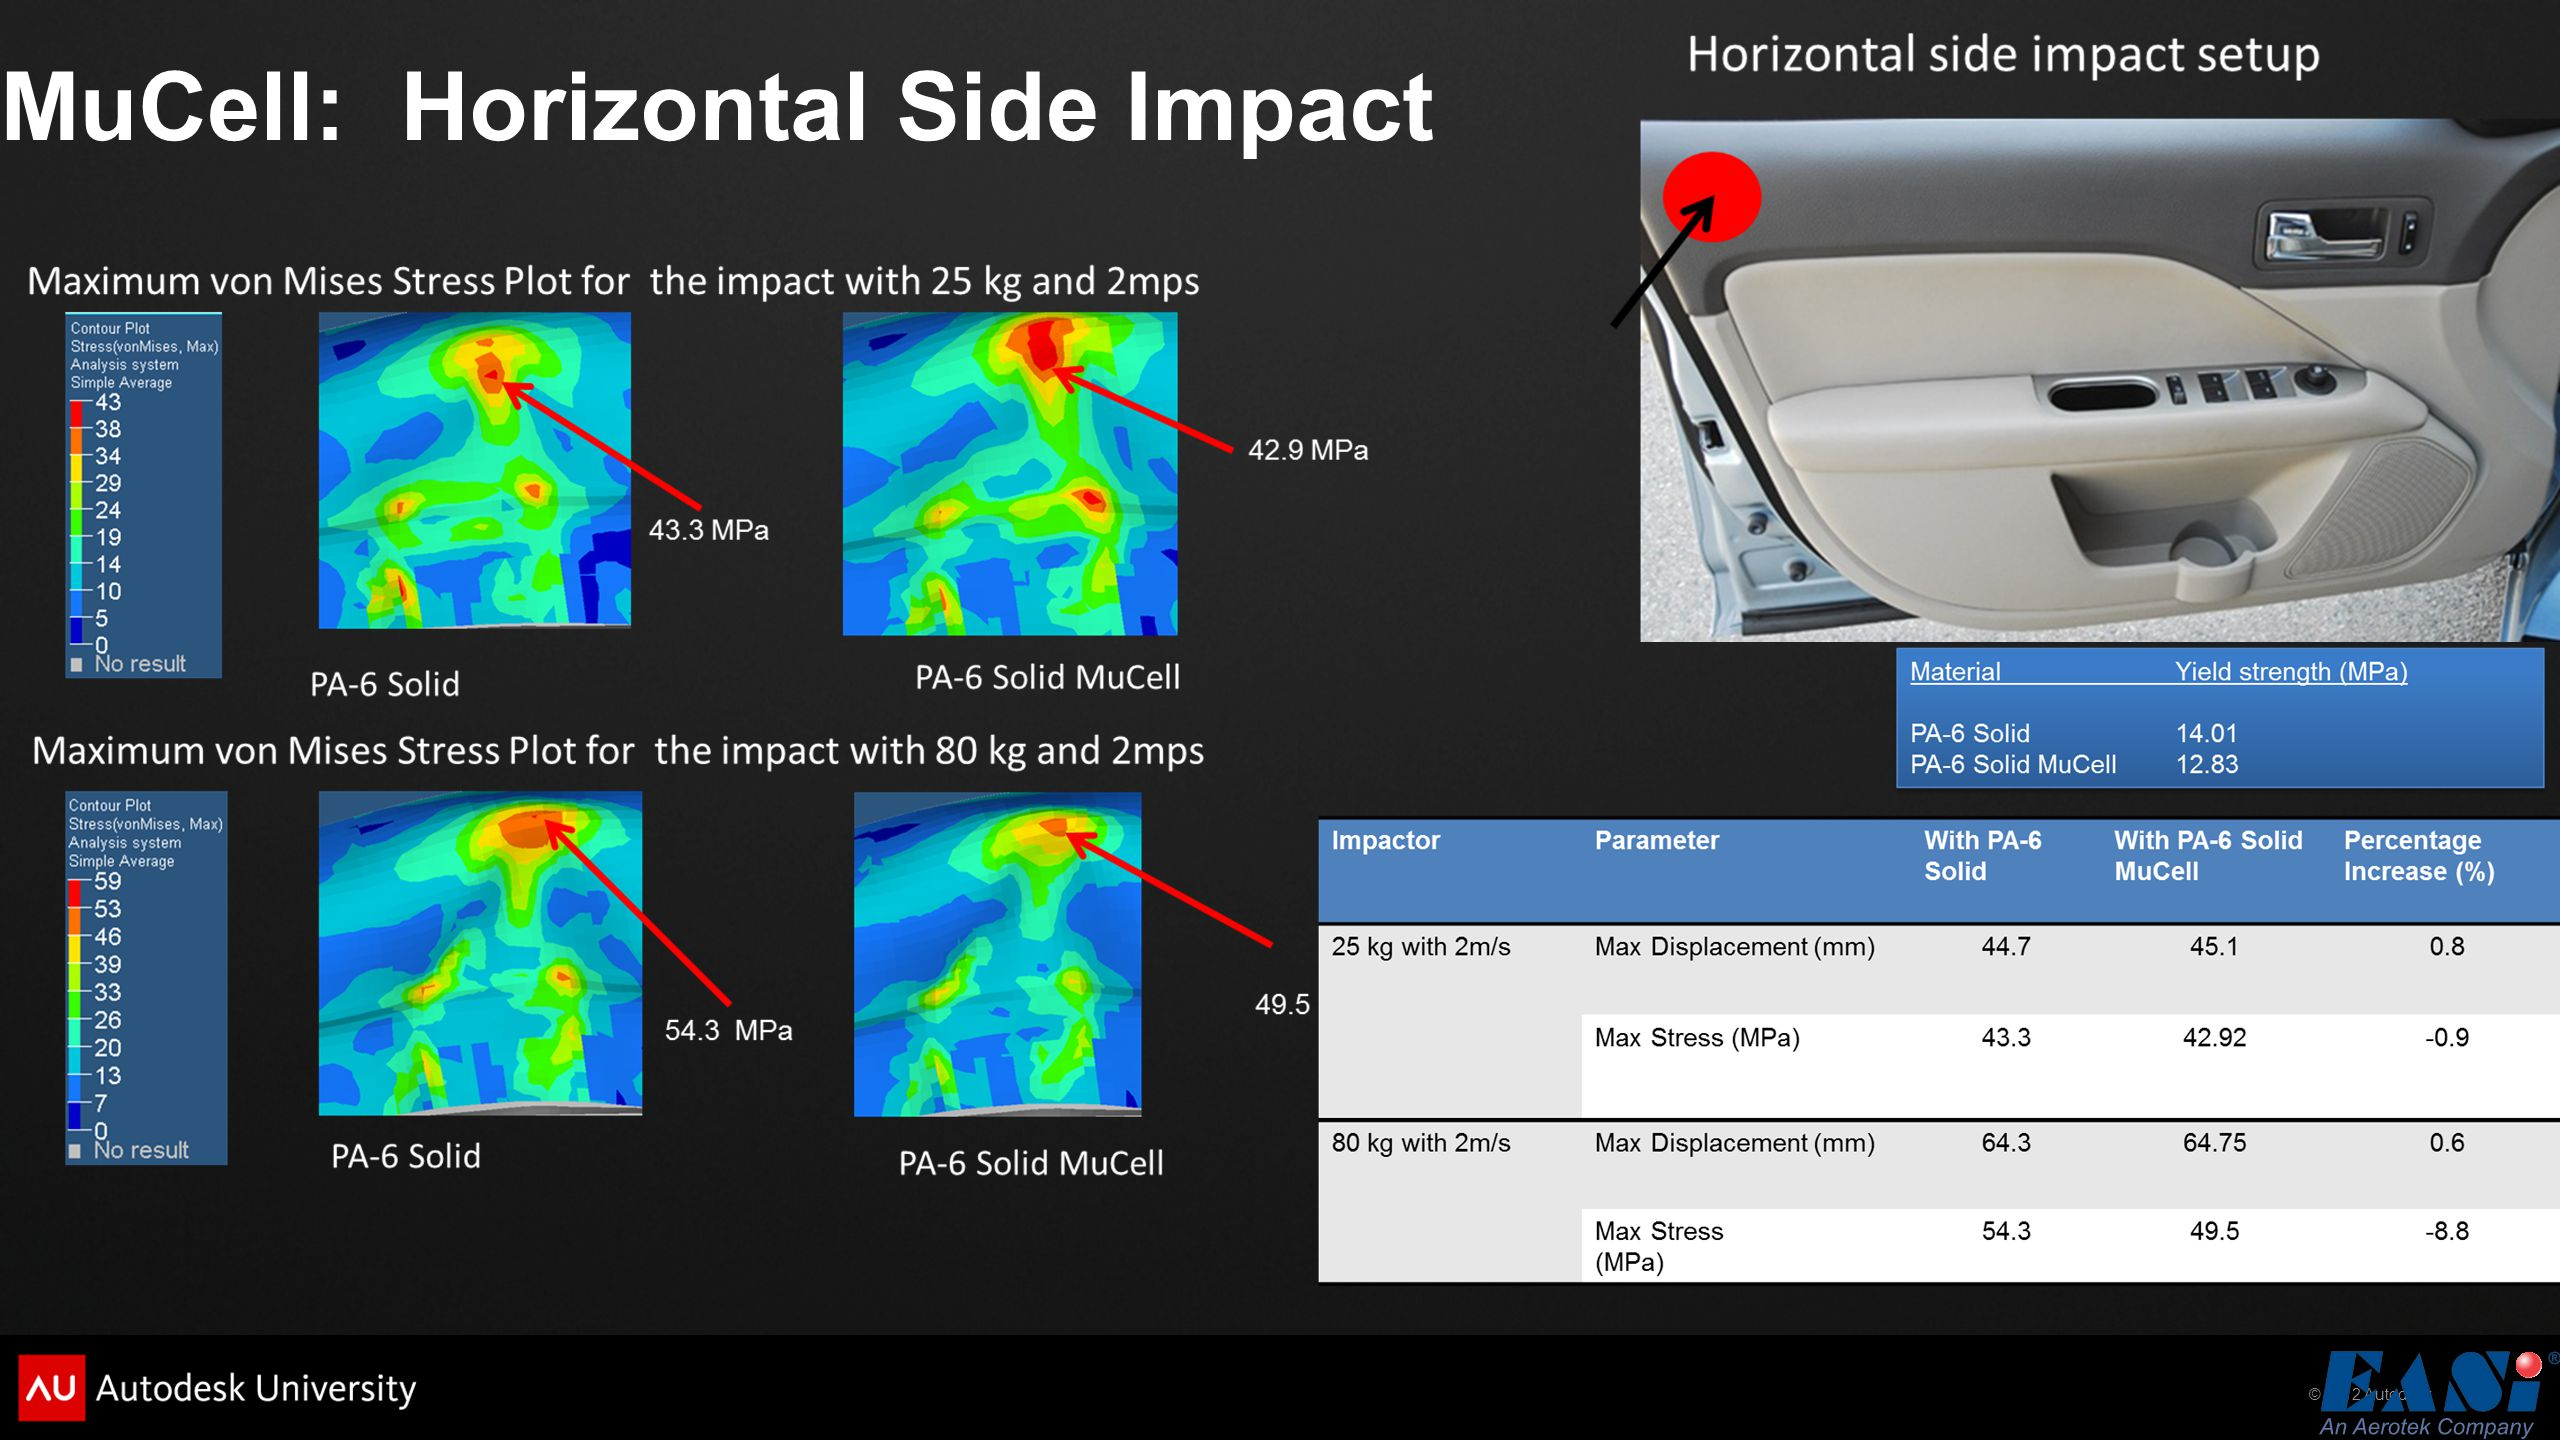 MuCell: Horizontal Side Impact